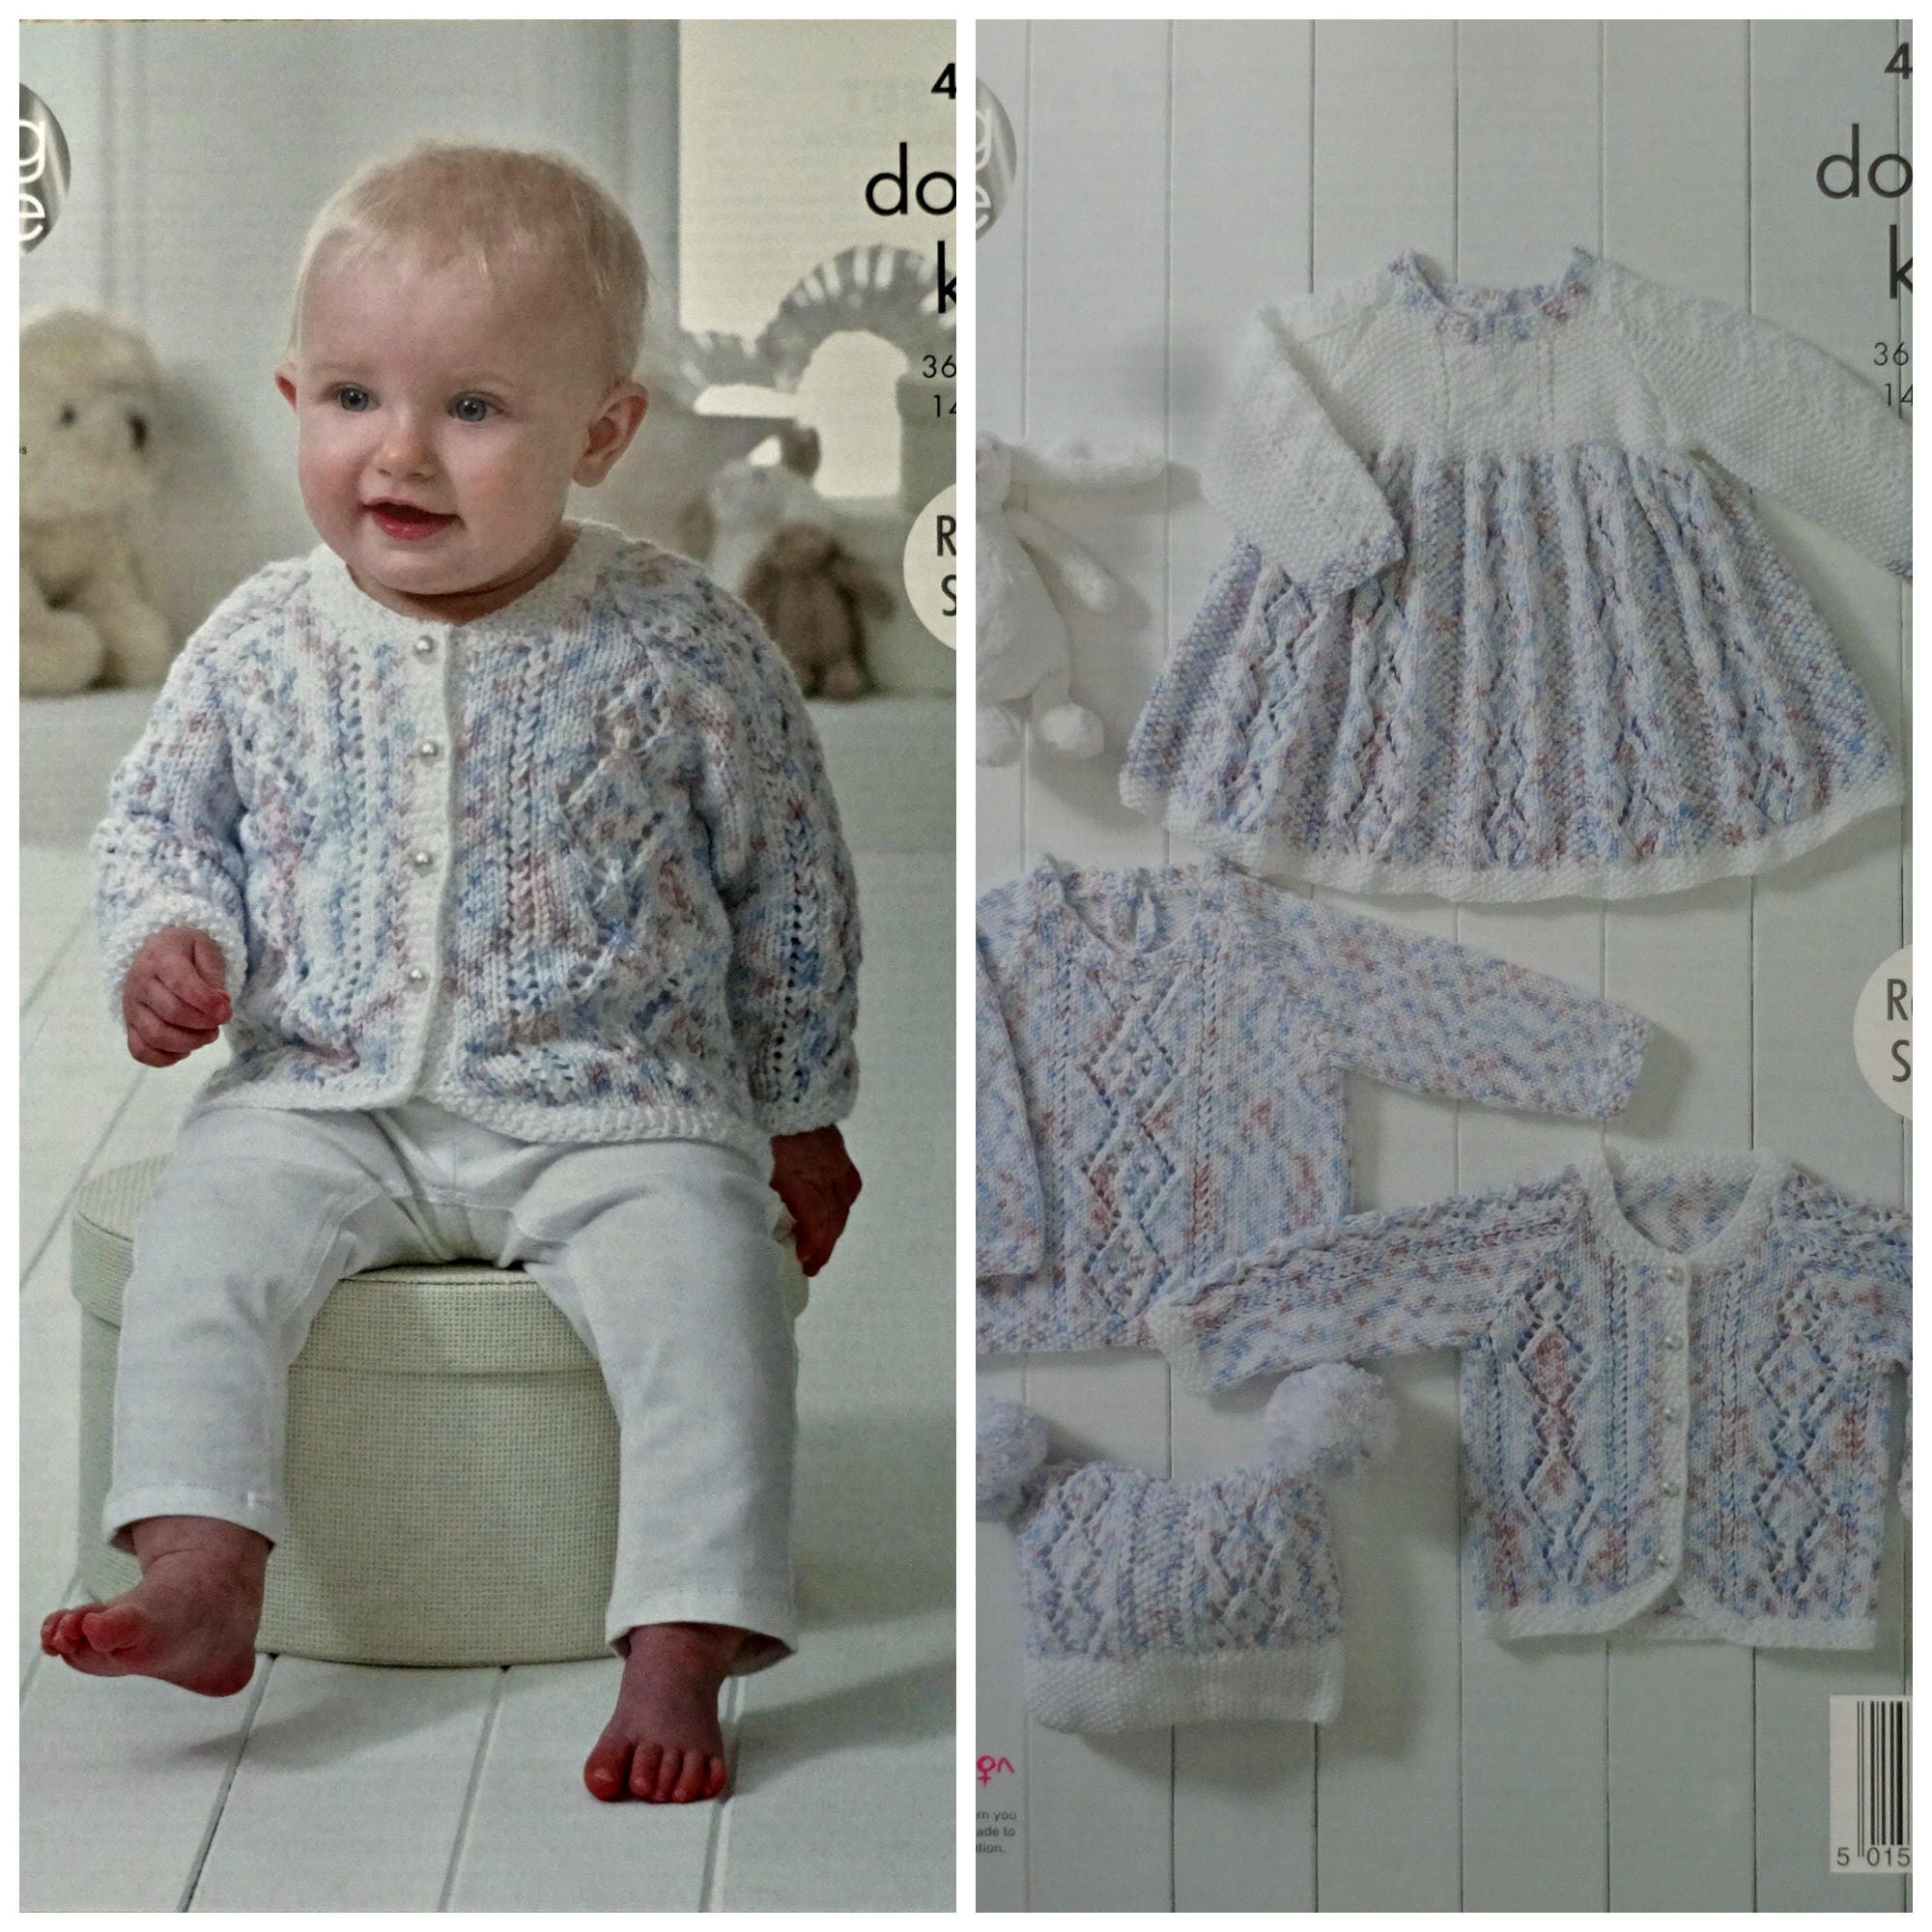 Baby Knitting Pattern K4896 Baby\'s Smock Dress Cardigan Jumper and ...